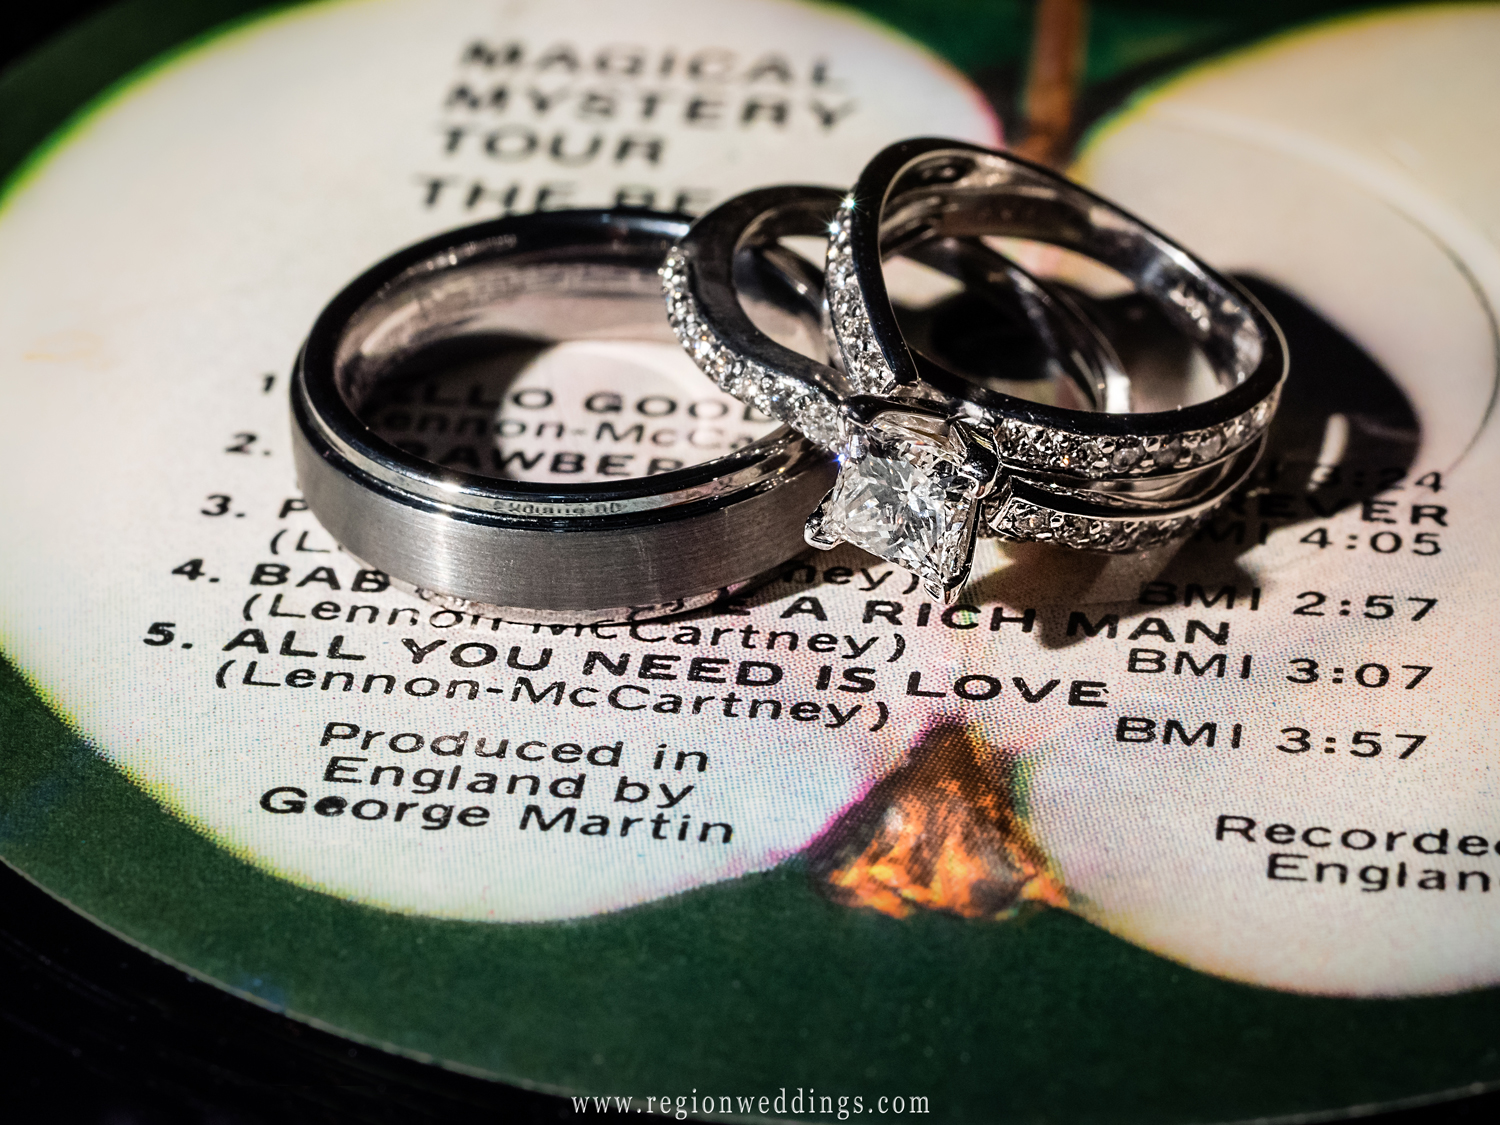 Wedding rings sit atop The Beatles album next to the song All You Need Is Love.